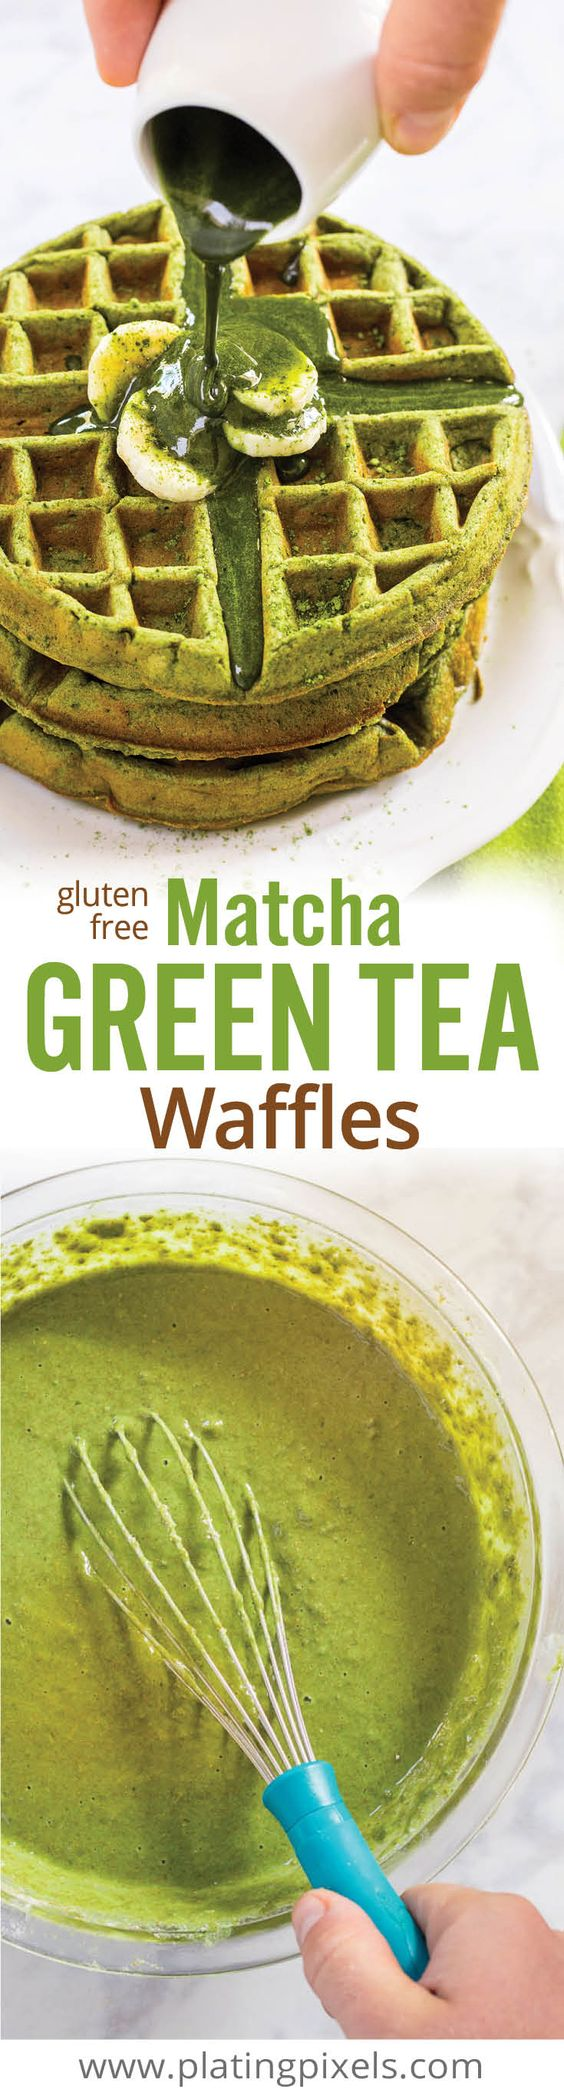 green teas matcha green tea gluten free eggs green teas powder coconut ...